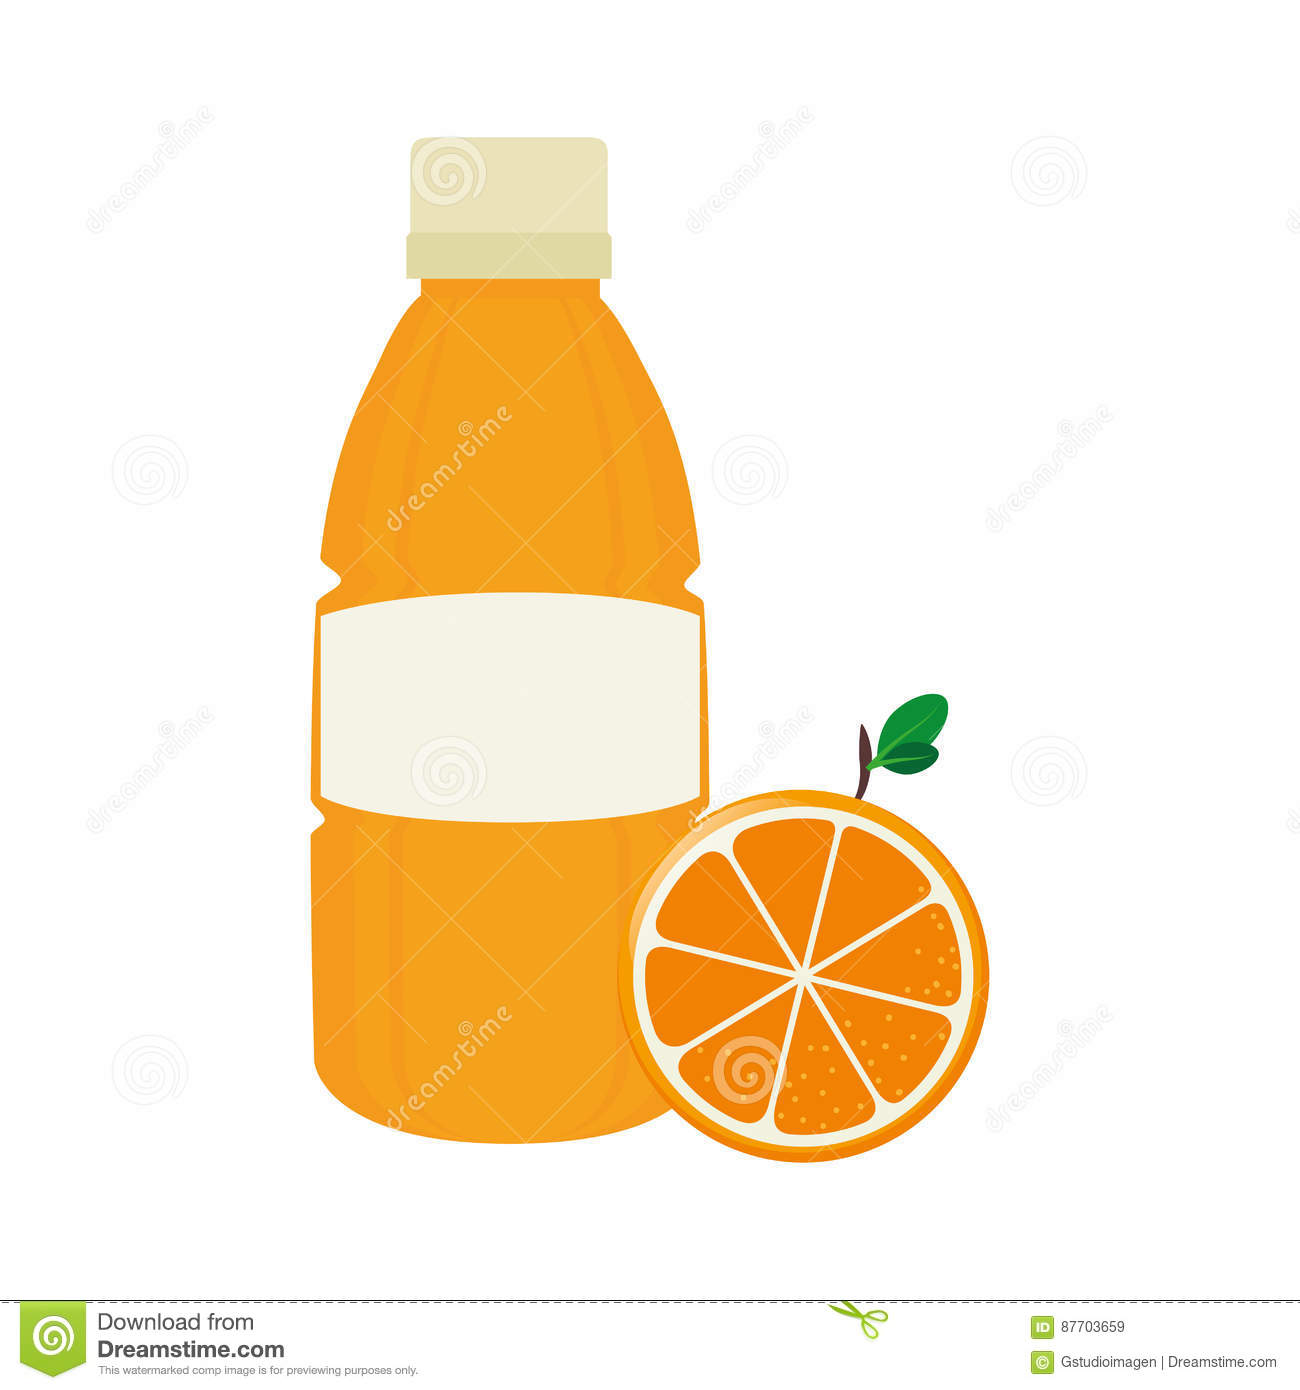 Icône de fruit de jus d orange